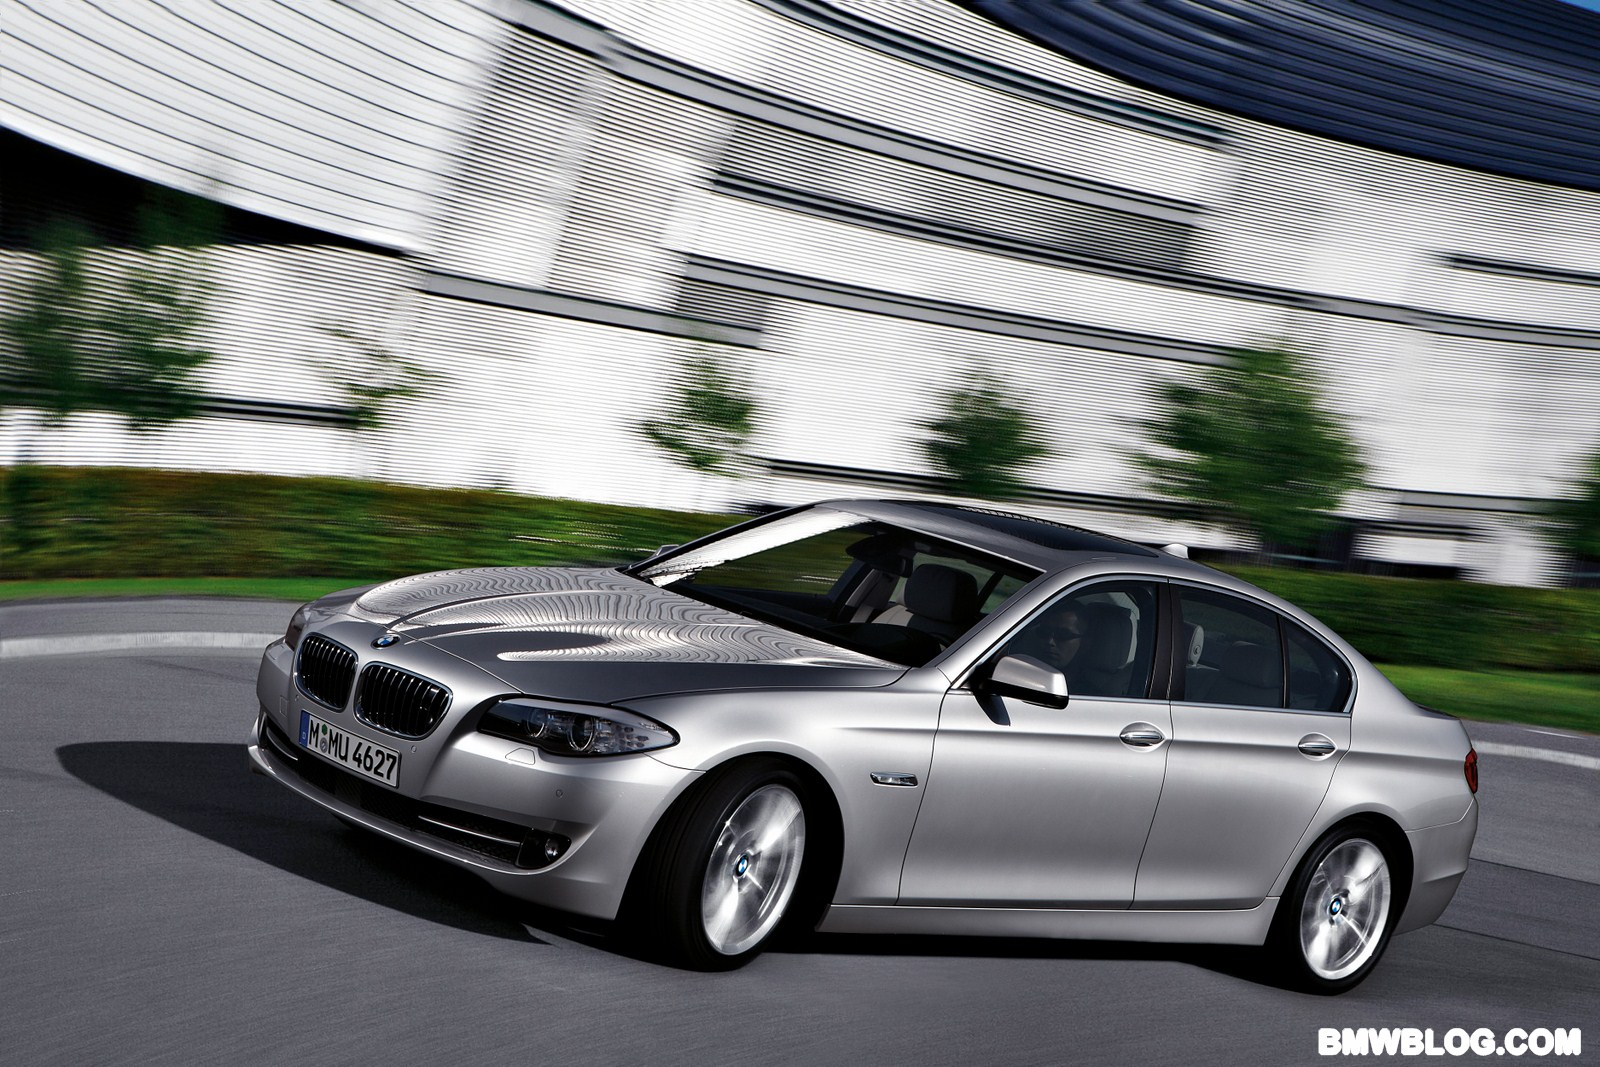 BMW 5 Series: An elegant, safe, dynamic, efficient and globally ...